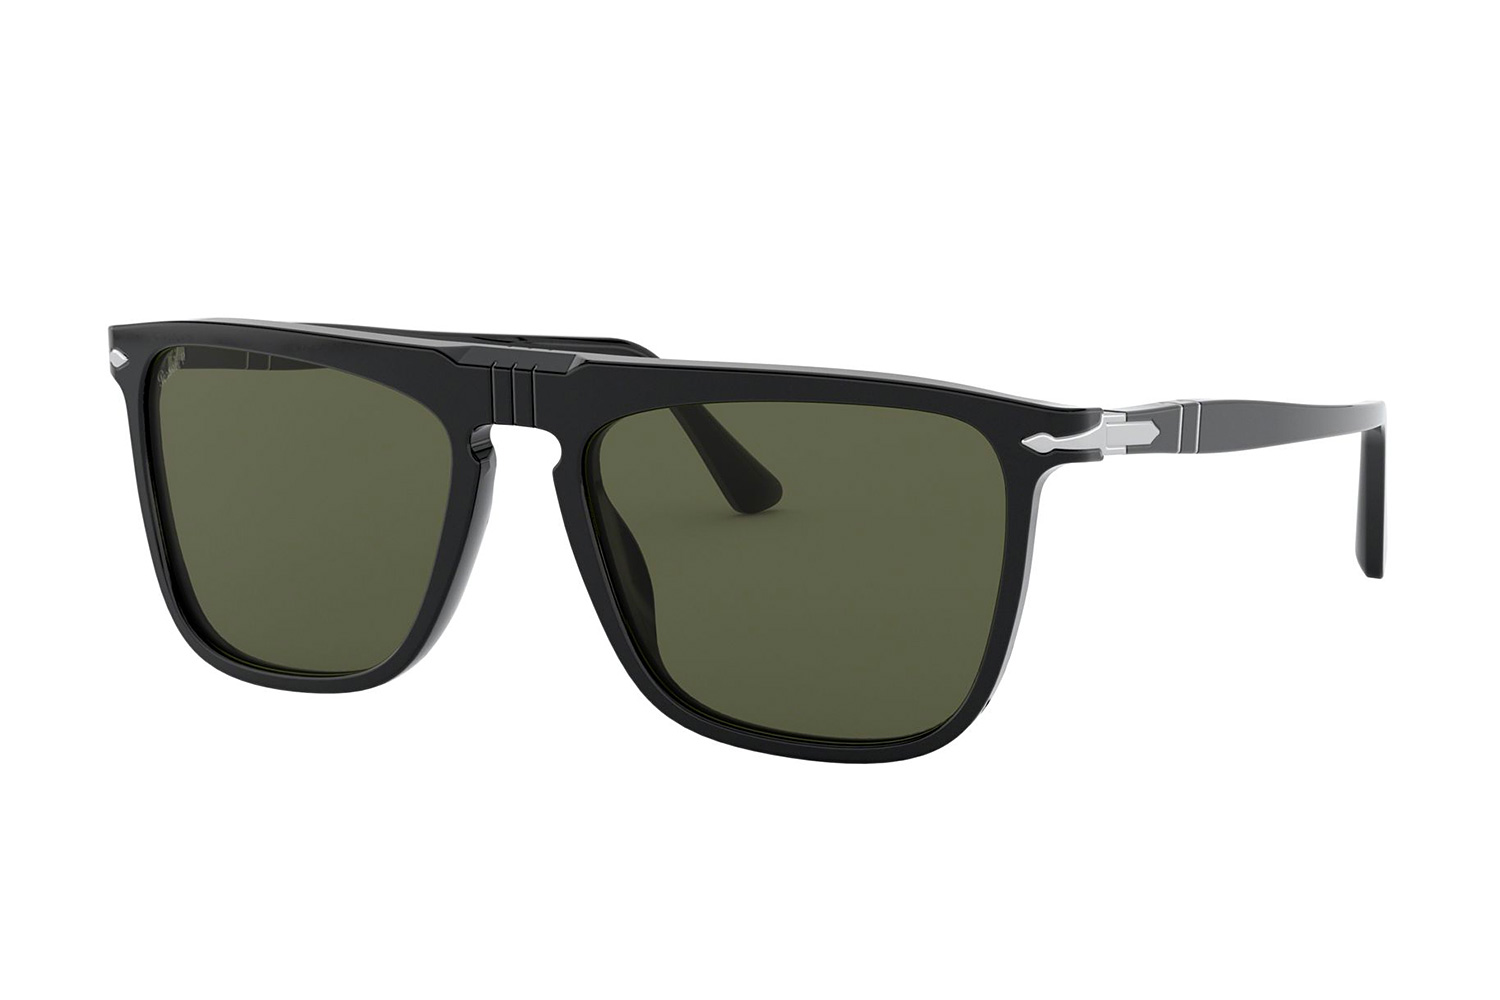 Persol Brings Back an 80s Classic at werd.com